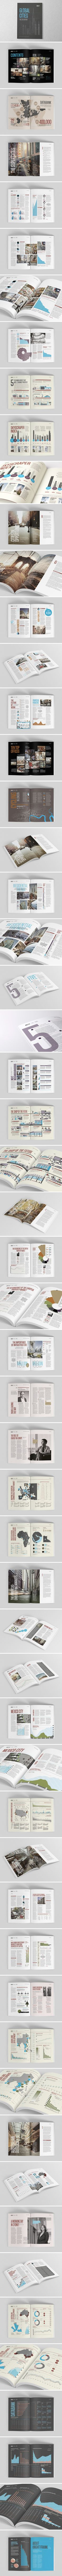 \\\ Knight Frank - Global Cities Report by The Design Surgery \\\ Editorial design magazine / revista / infografia / infographic. Booklet Design, Book Design Layout, Print Layout, Graphic Design Layouts, Editorial Design, Editorial Layout, Brochure Layout, Brochure Design, Layout Inspiration